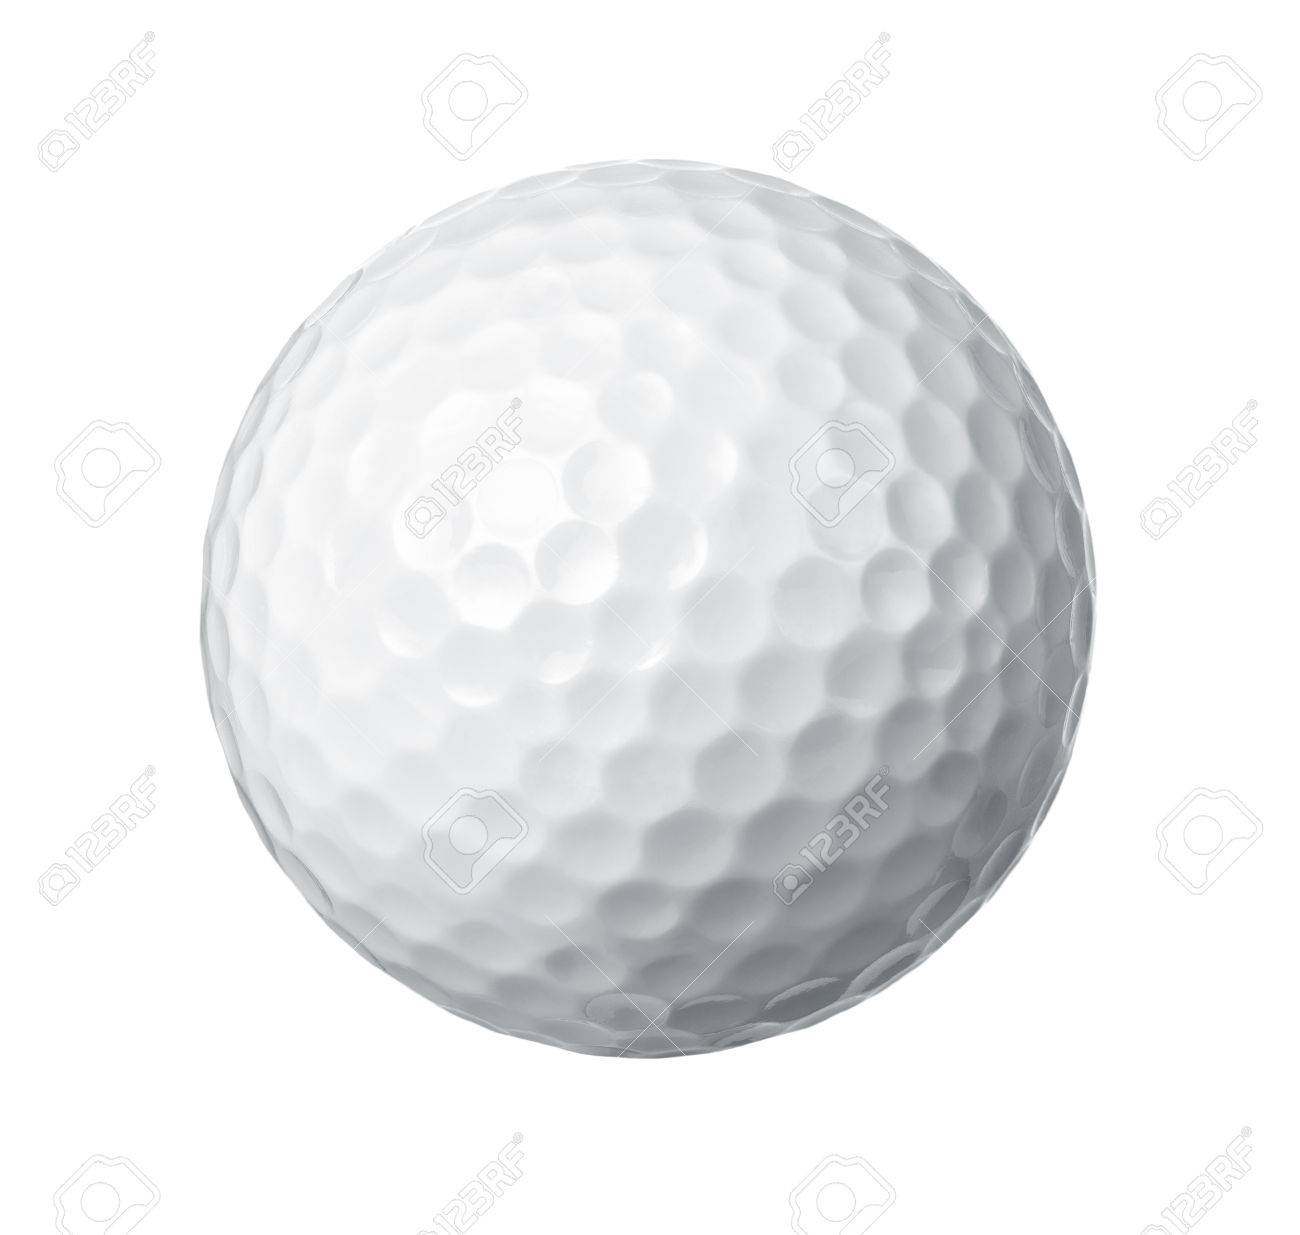 close up of a golf ball isolated on white background stock photo